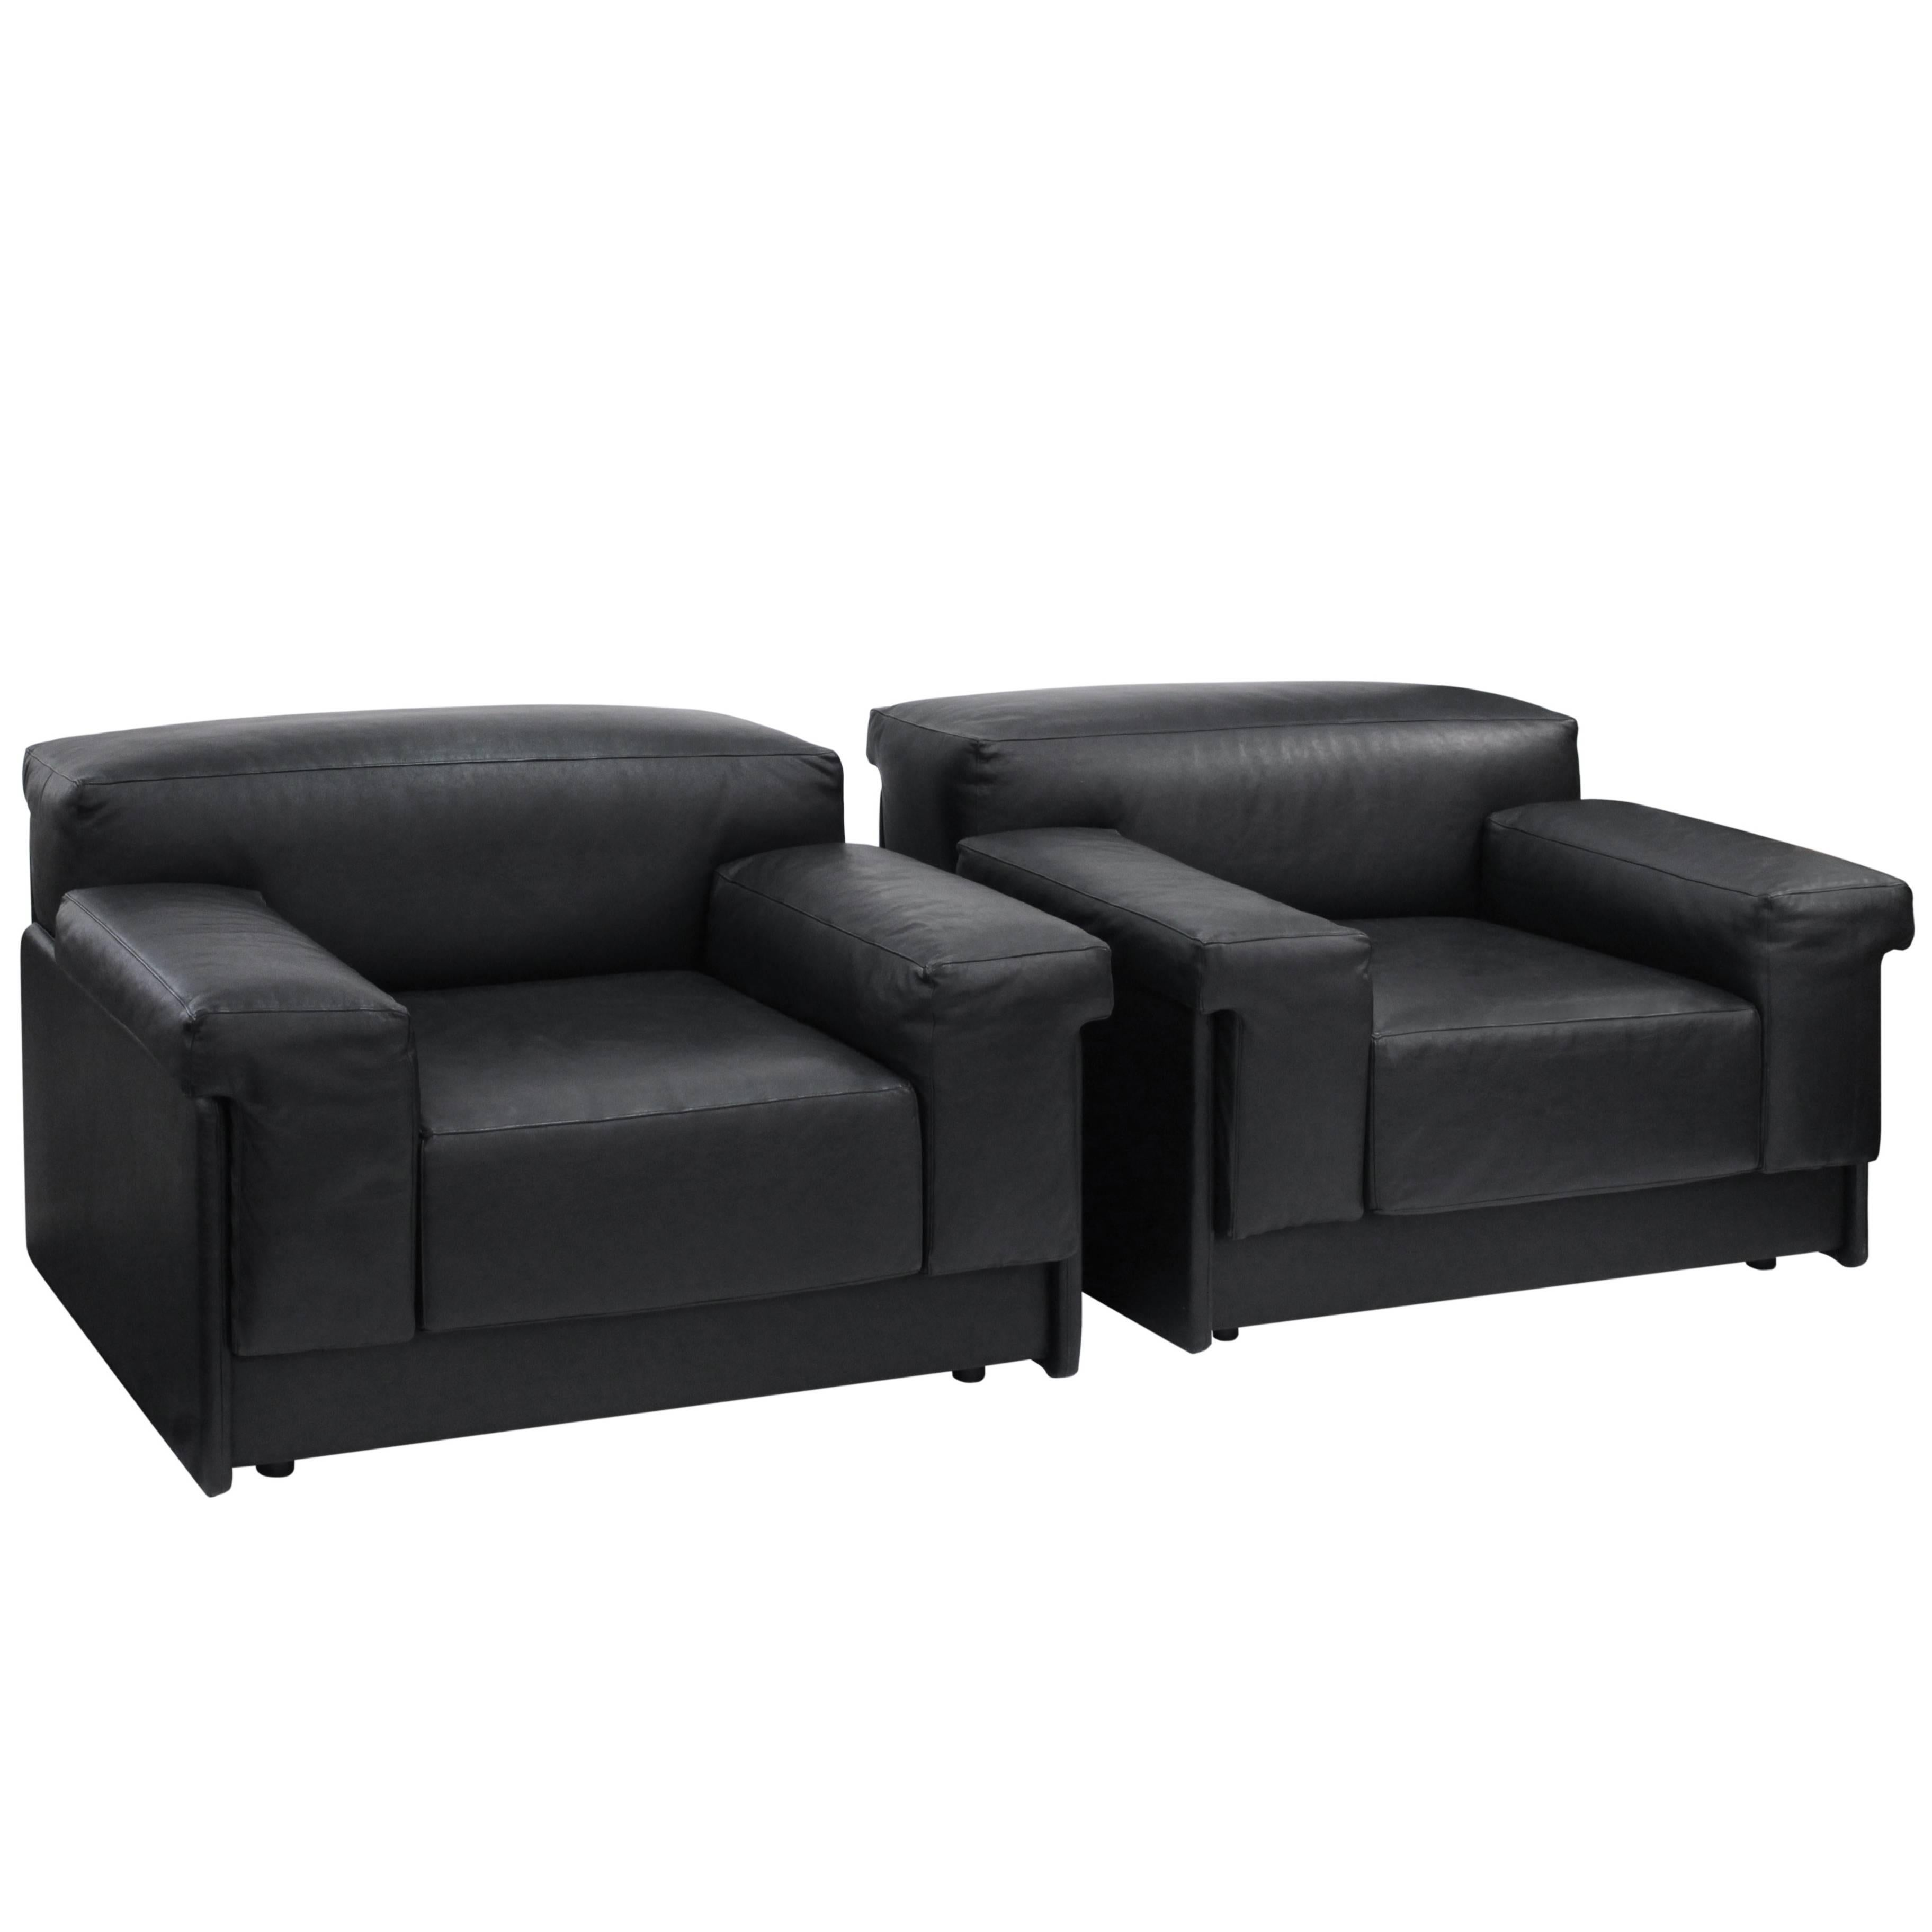 """Pair of """"Raphael Lounge Chairs"""" in Black Leather by Harvey Probber"""